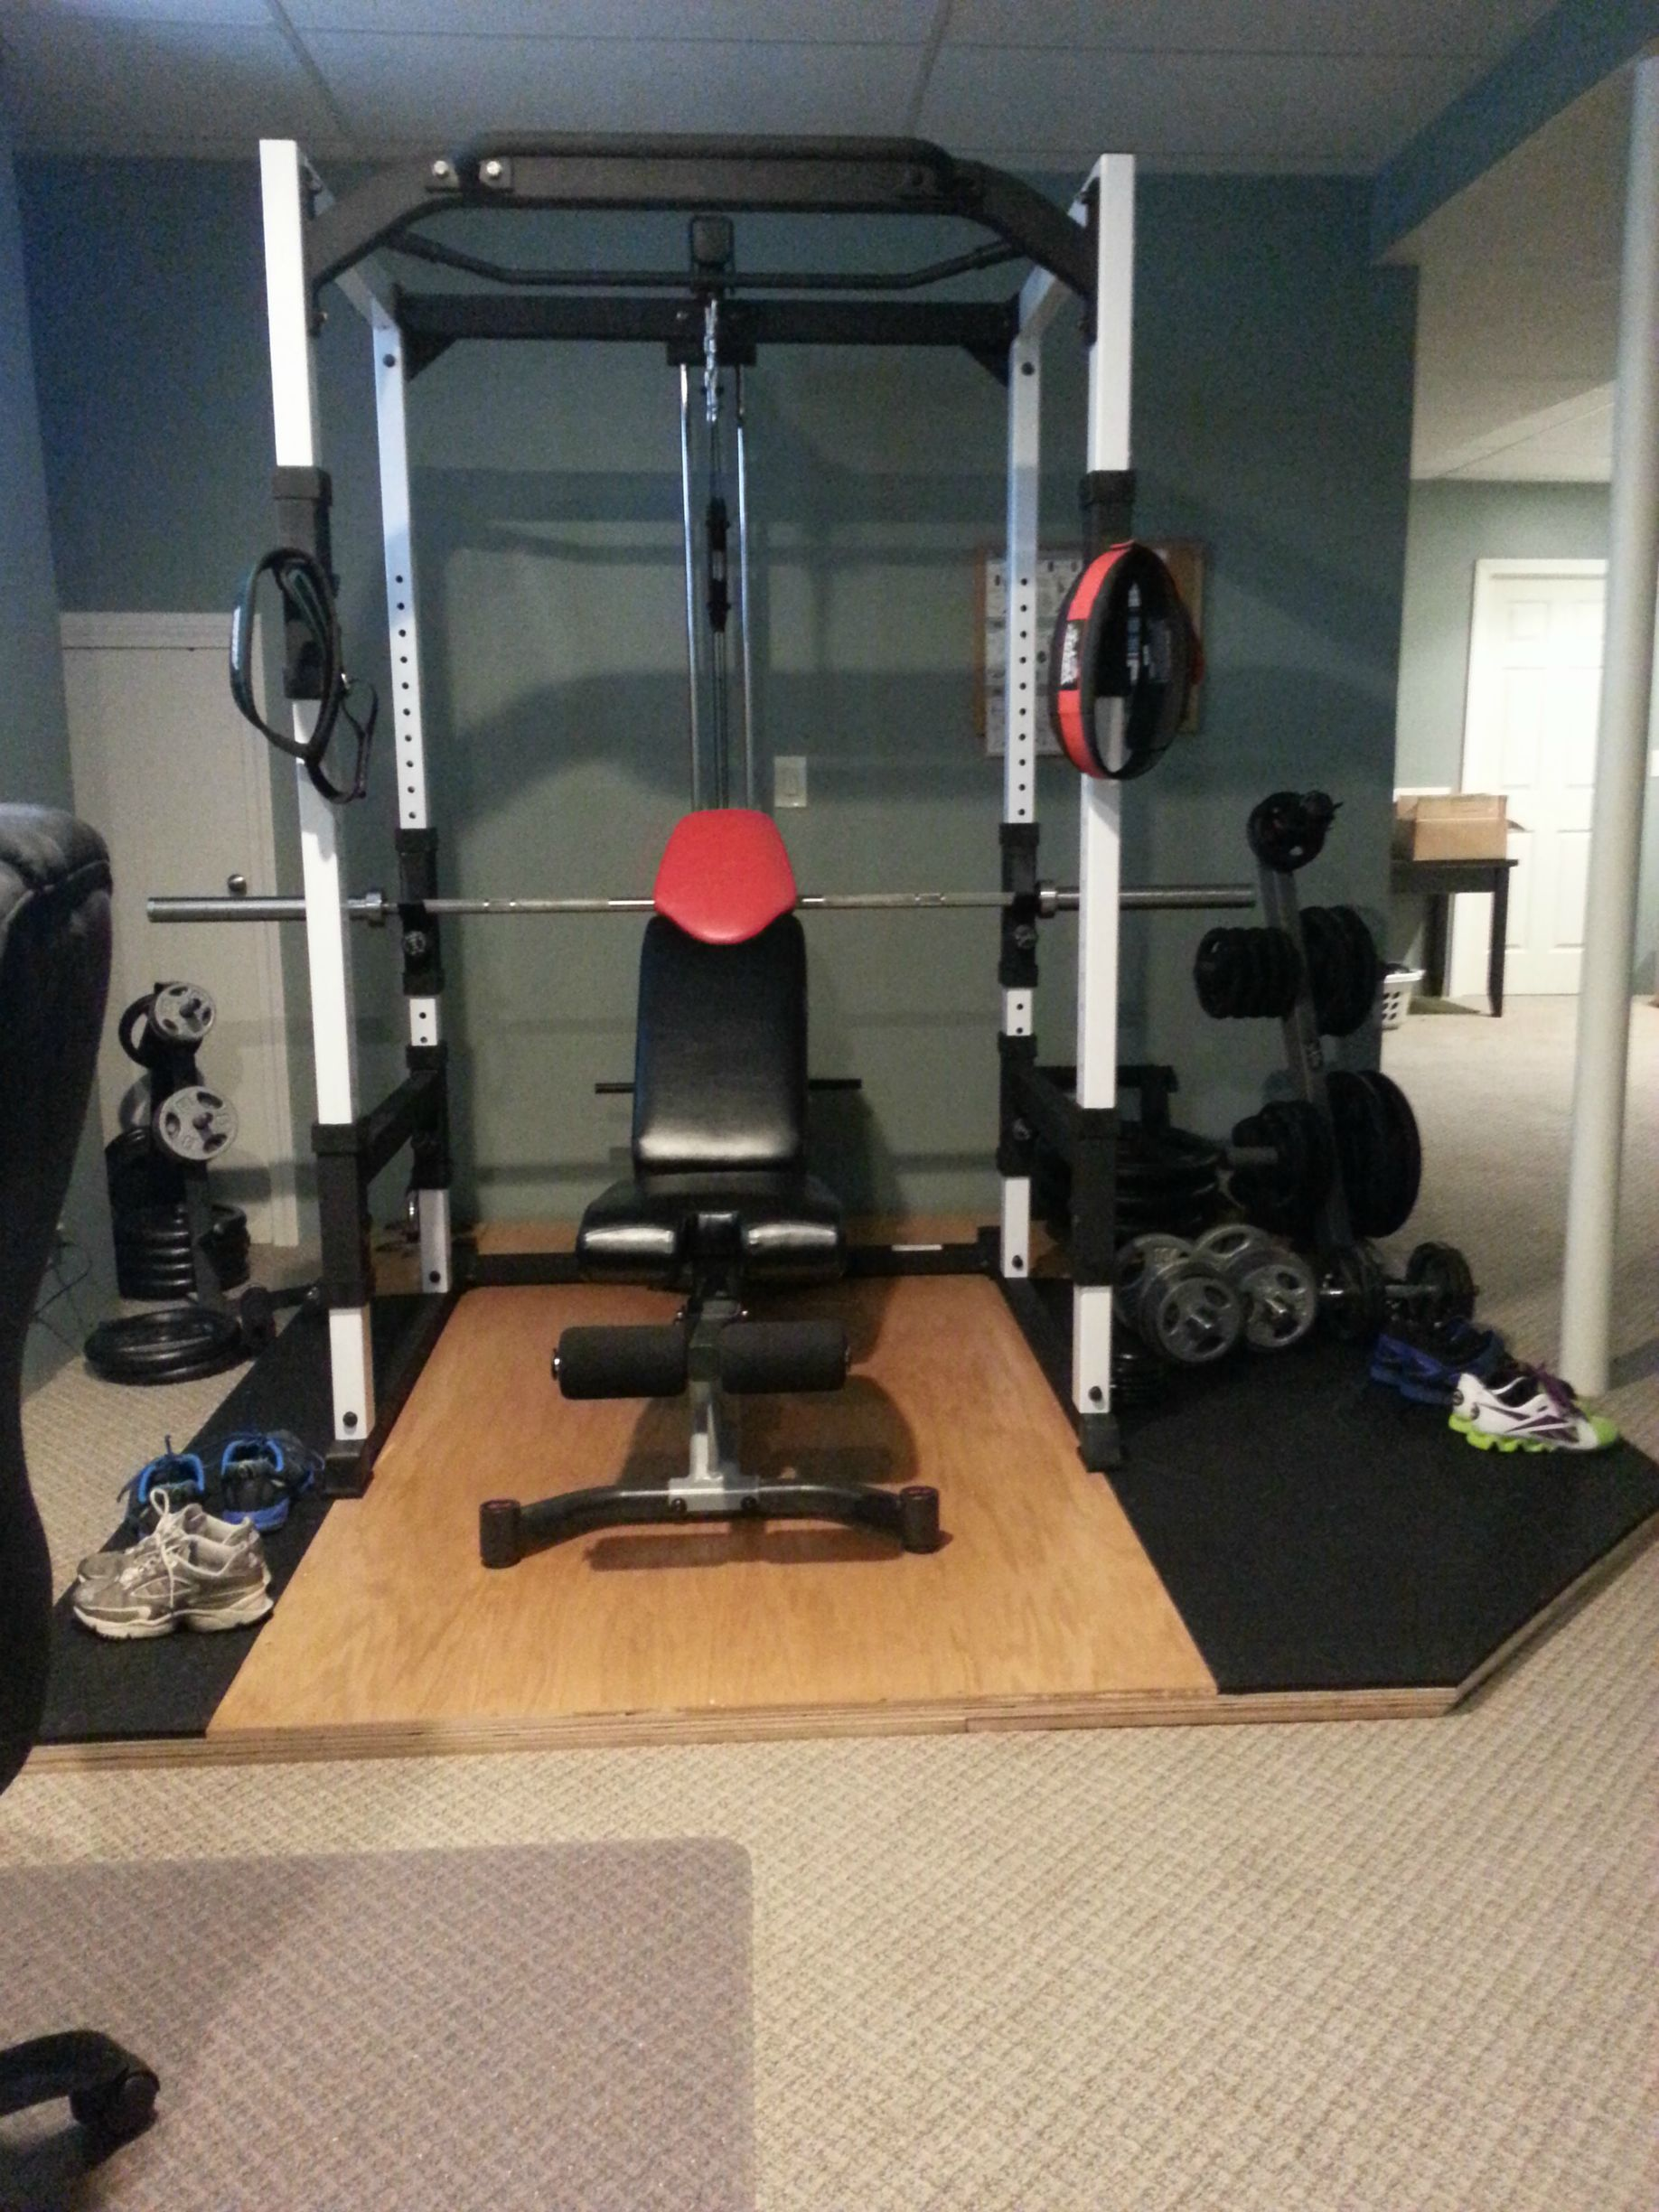 Home gym diy plywood base over carpet home gym in home